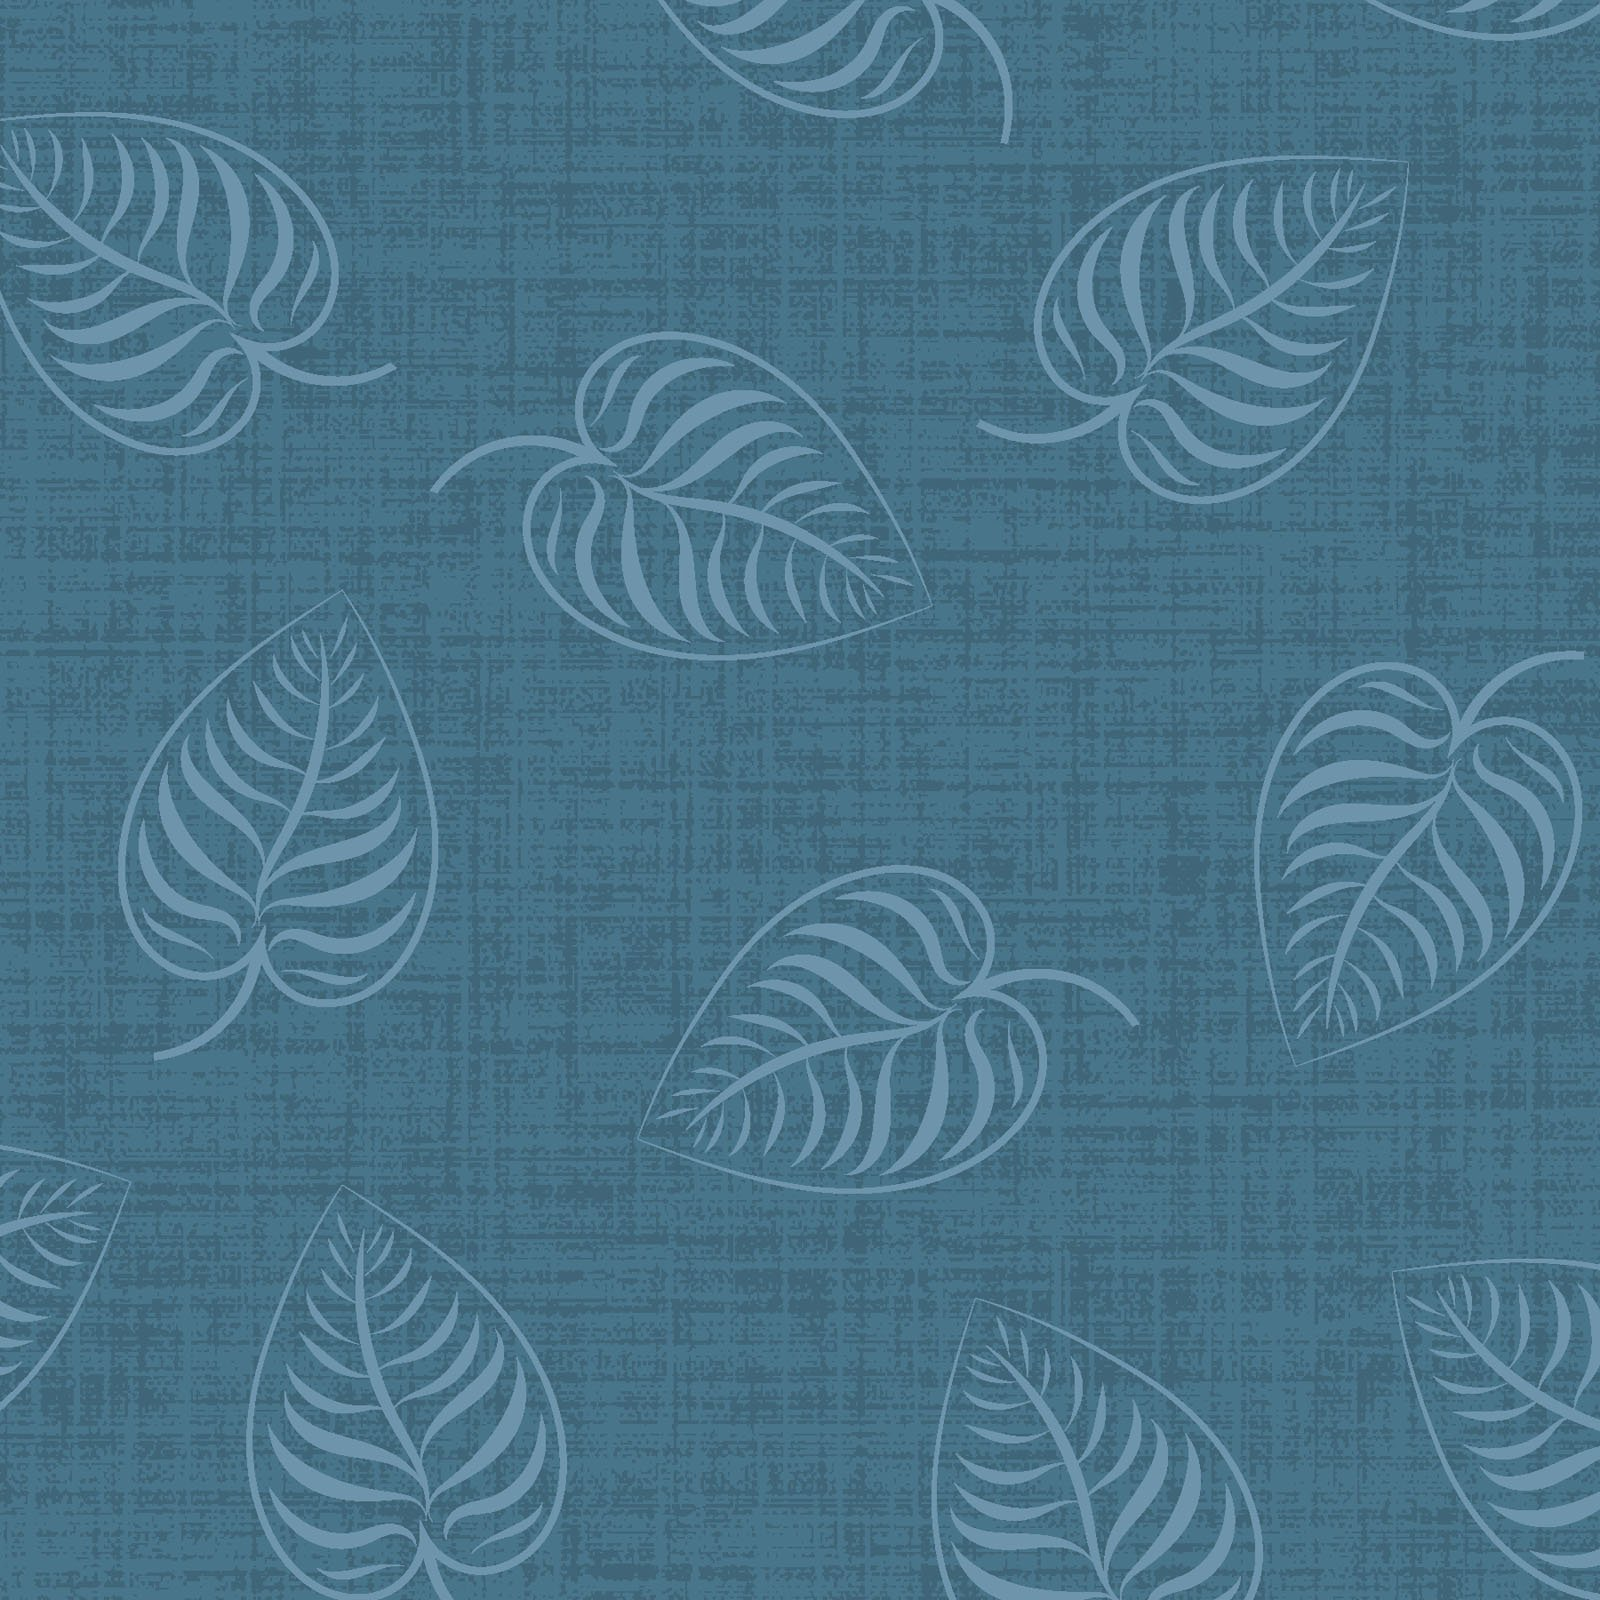 EESC-9883 B - FLOWER & VINE BY MONIQUE JACOBS LEAFPRINT BLUE - AVAILABLE TO ORDER